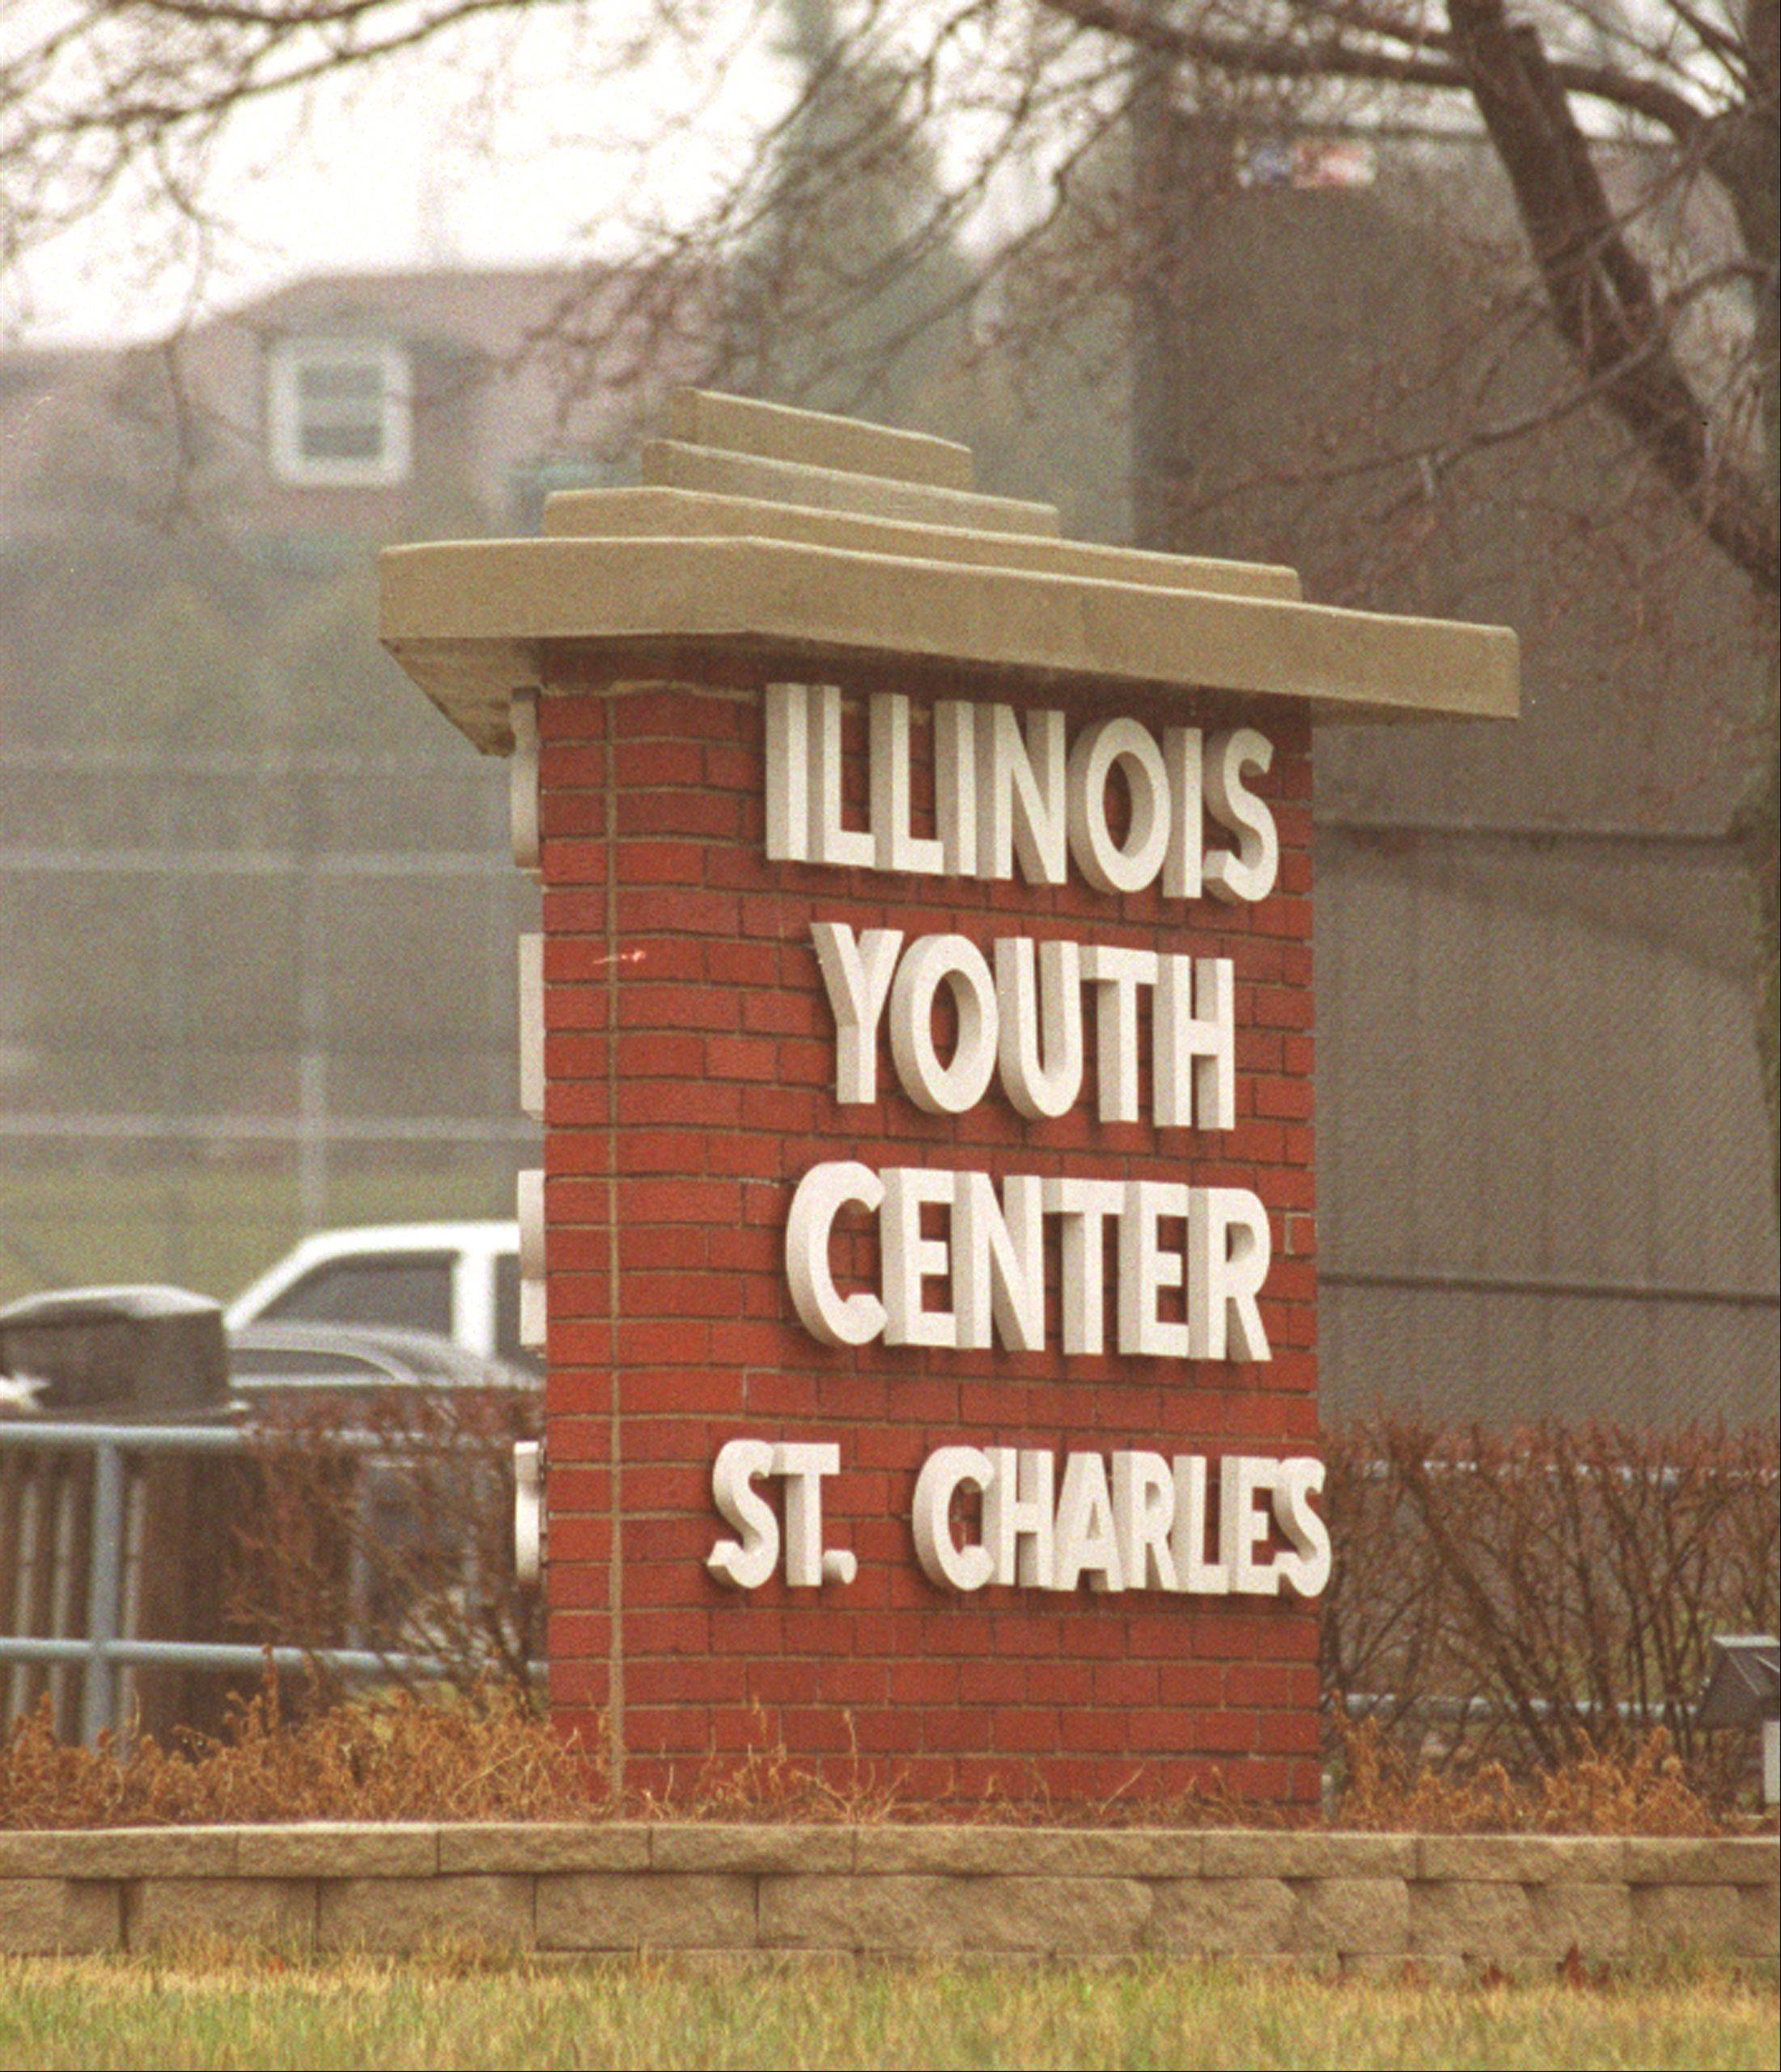 A van driver crashed into a building at the St. Charles youth center.